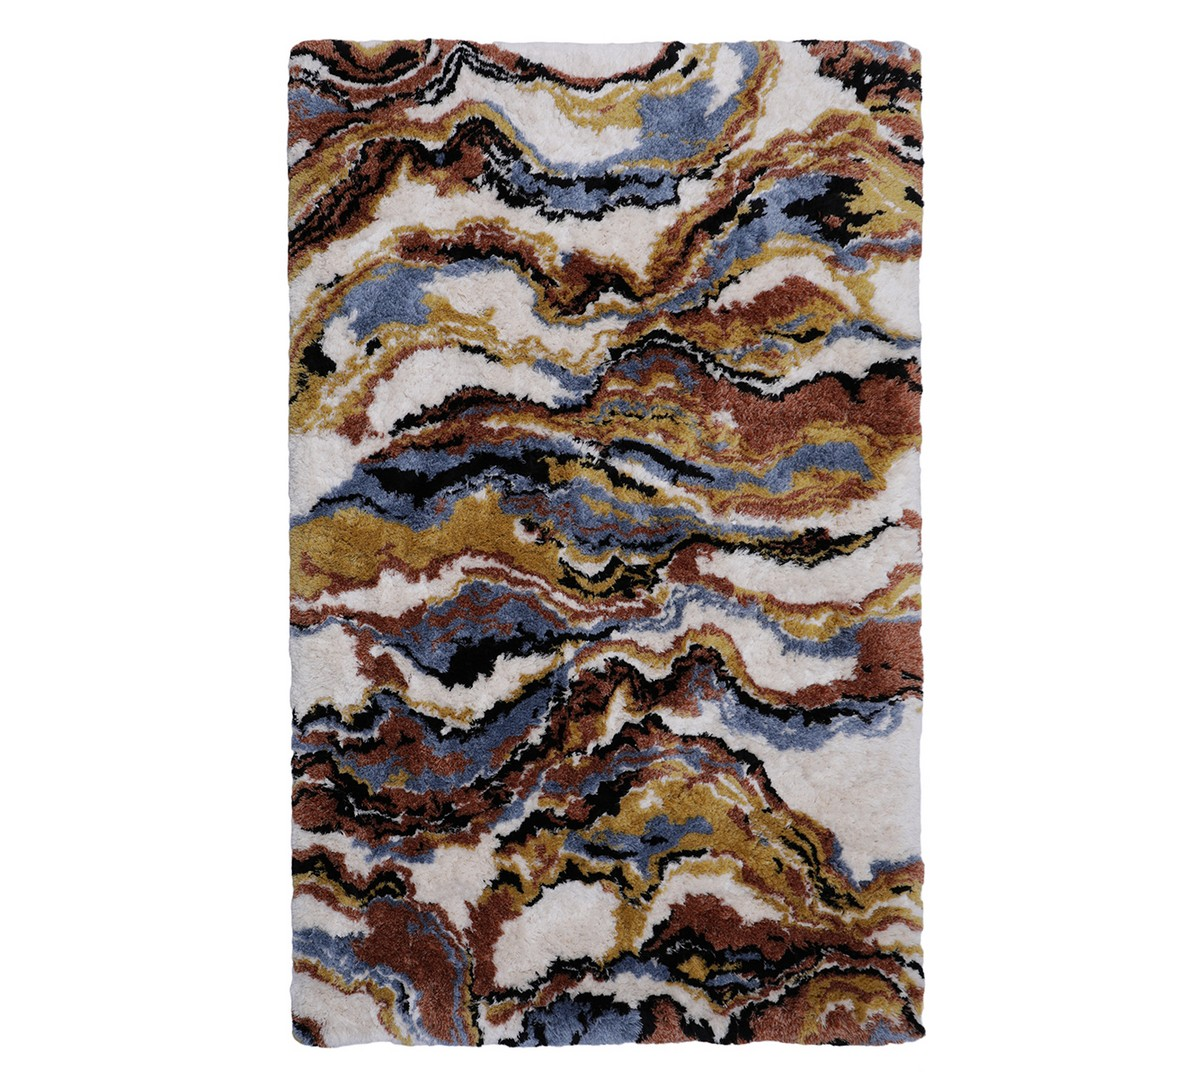 New Dining Room Rugs For Soul-stirring Contemporary Ambiances dining room New Dining Room Rugs For Soul-stirring Contemporary Ambiances la land